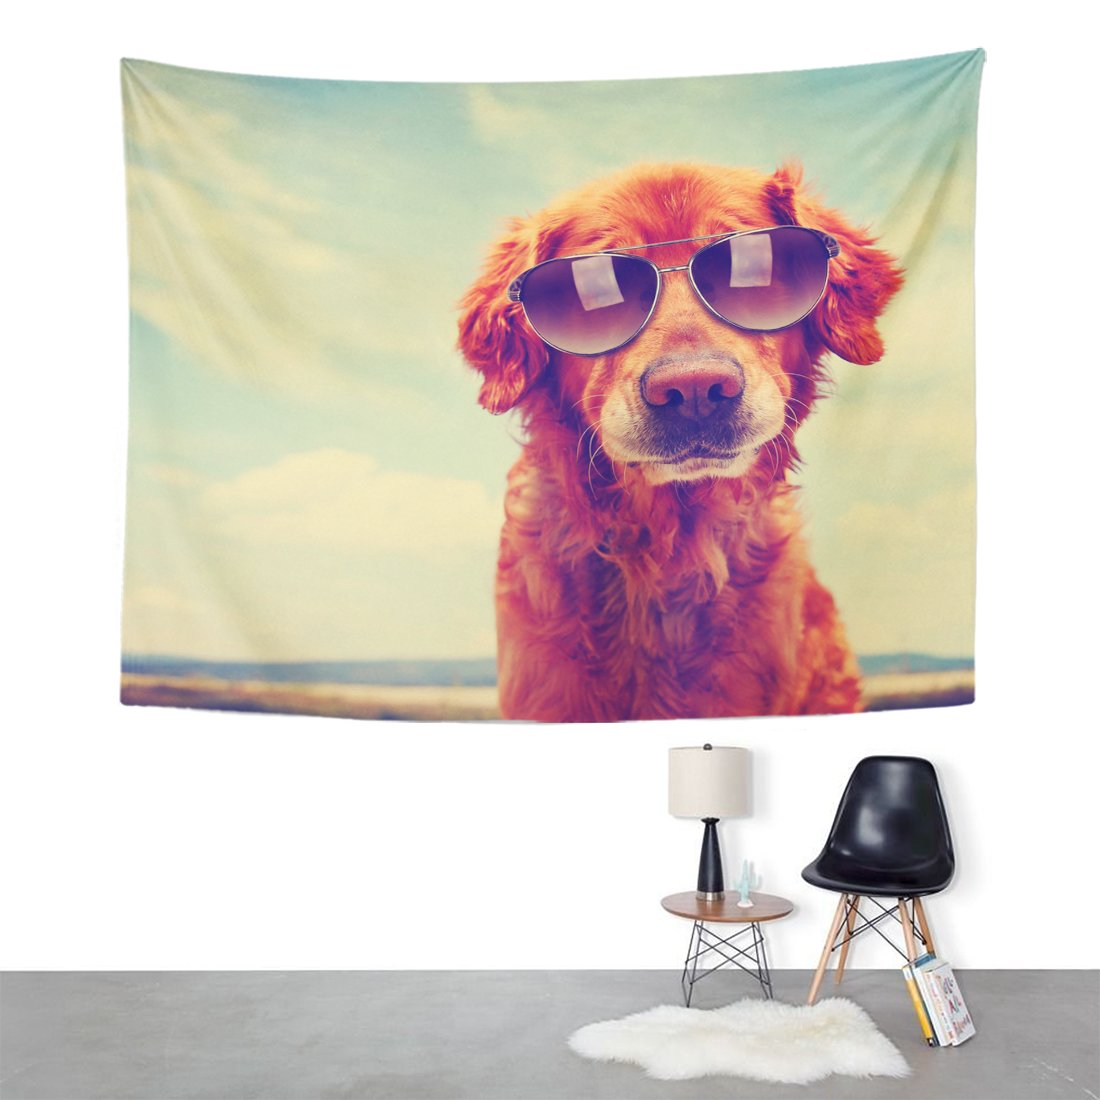 Emvency Tapestry Mandala 60x80 inch Home Decor Animal Cute Golden Retriever Toned with Retro Vintage with Sunglasses On Dog Eyewear for Bedroom Living Room Dorm